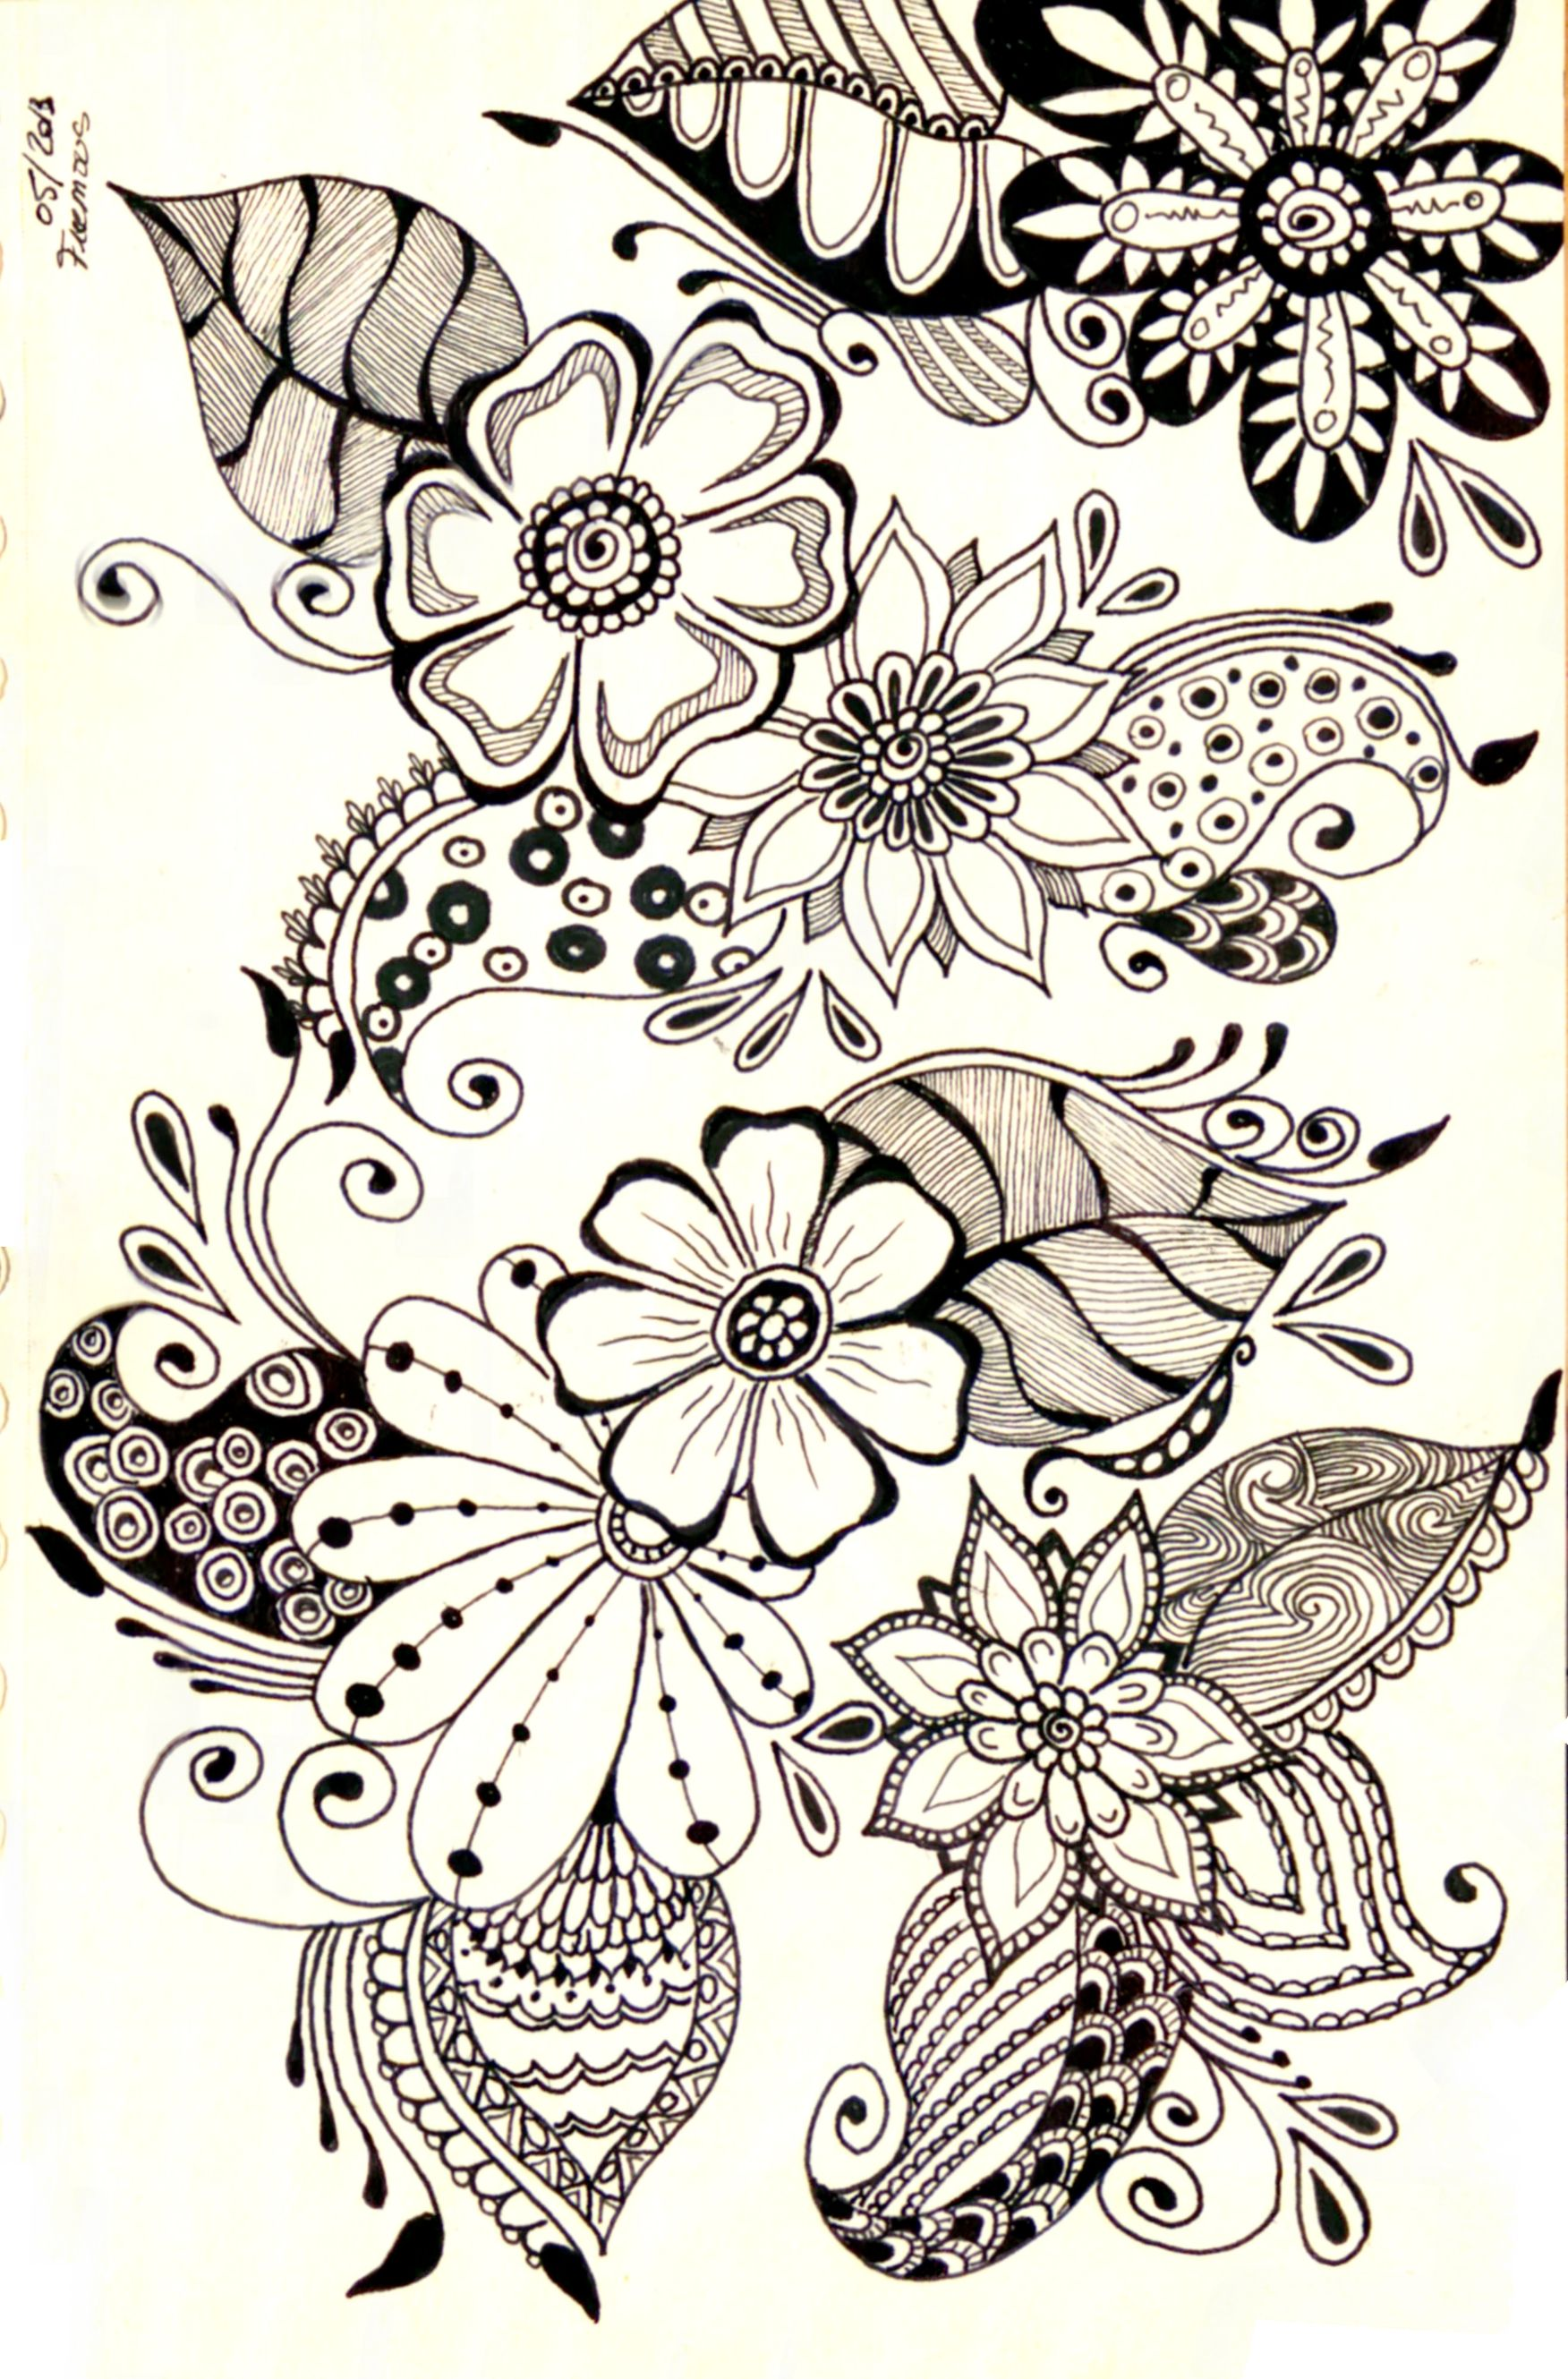 Floral designs doodle how to flowers in 2019 drawings - Doodle dessin ...